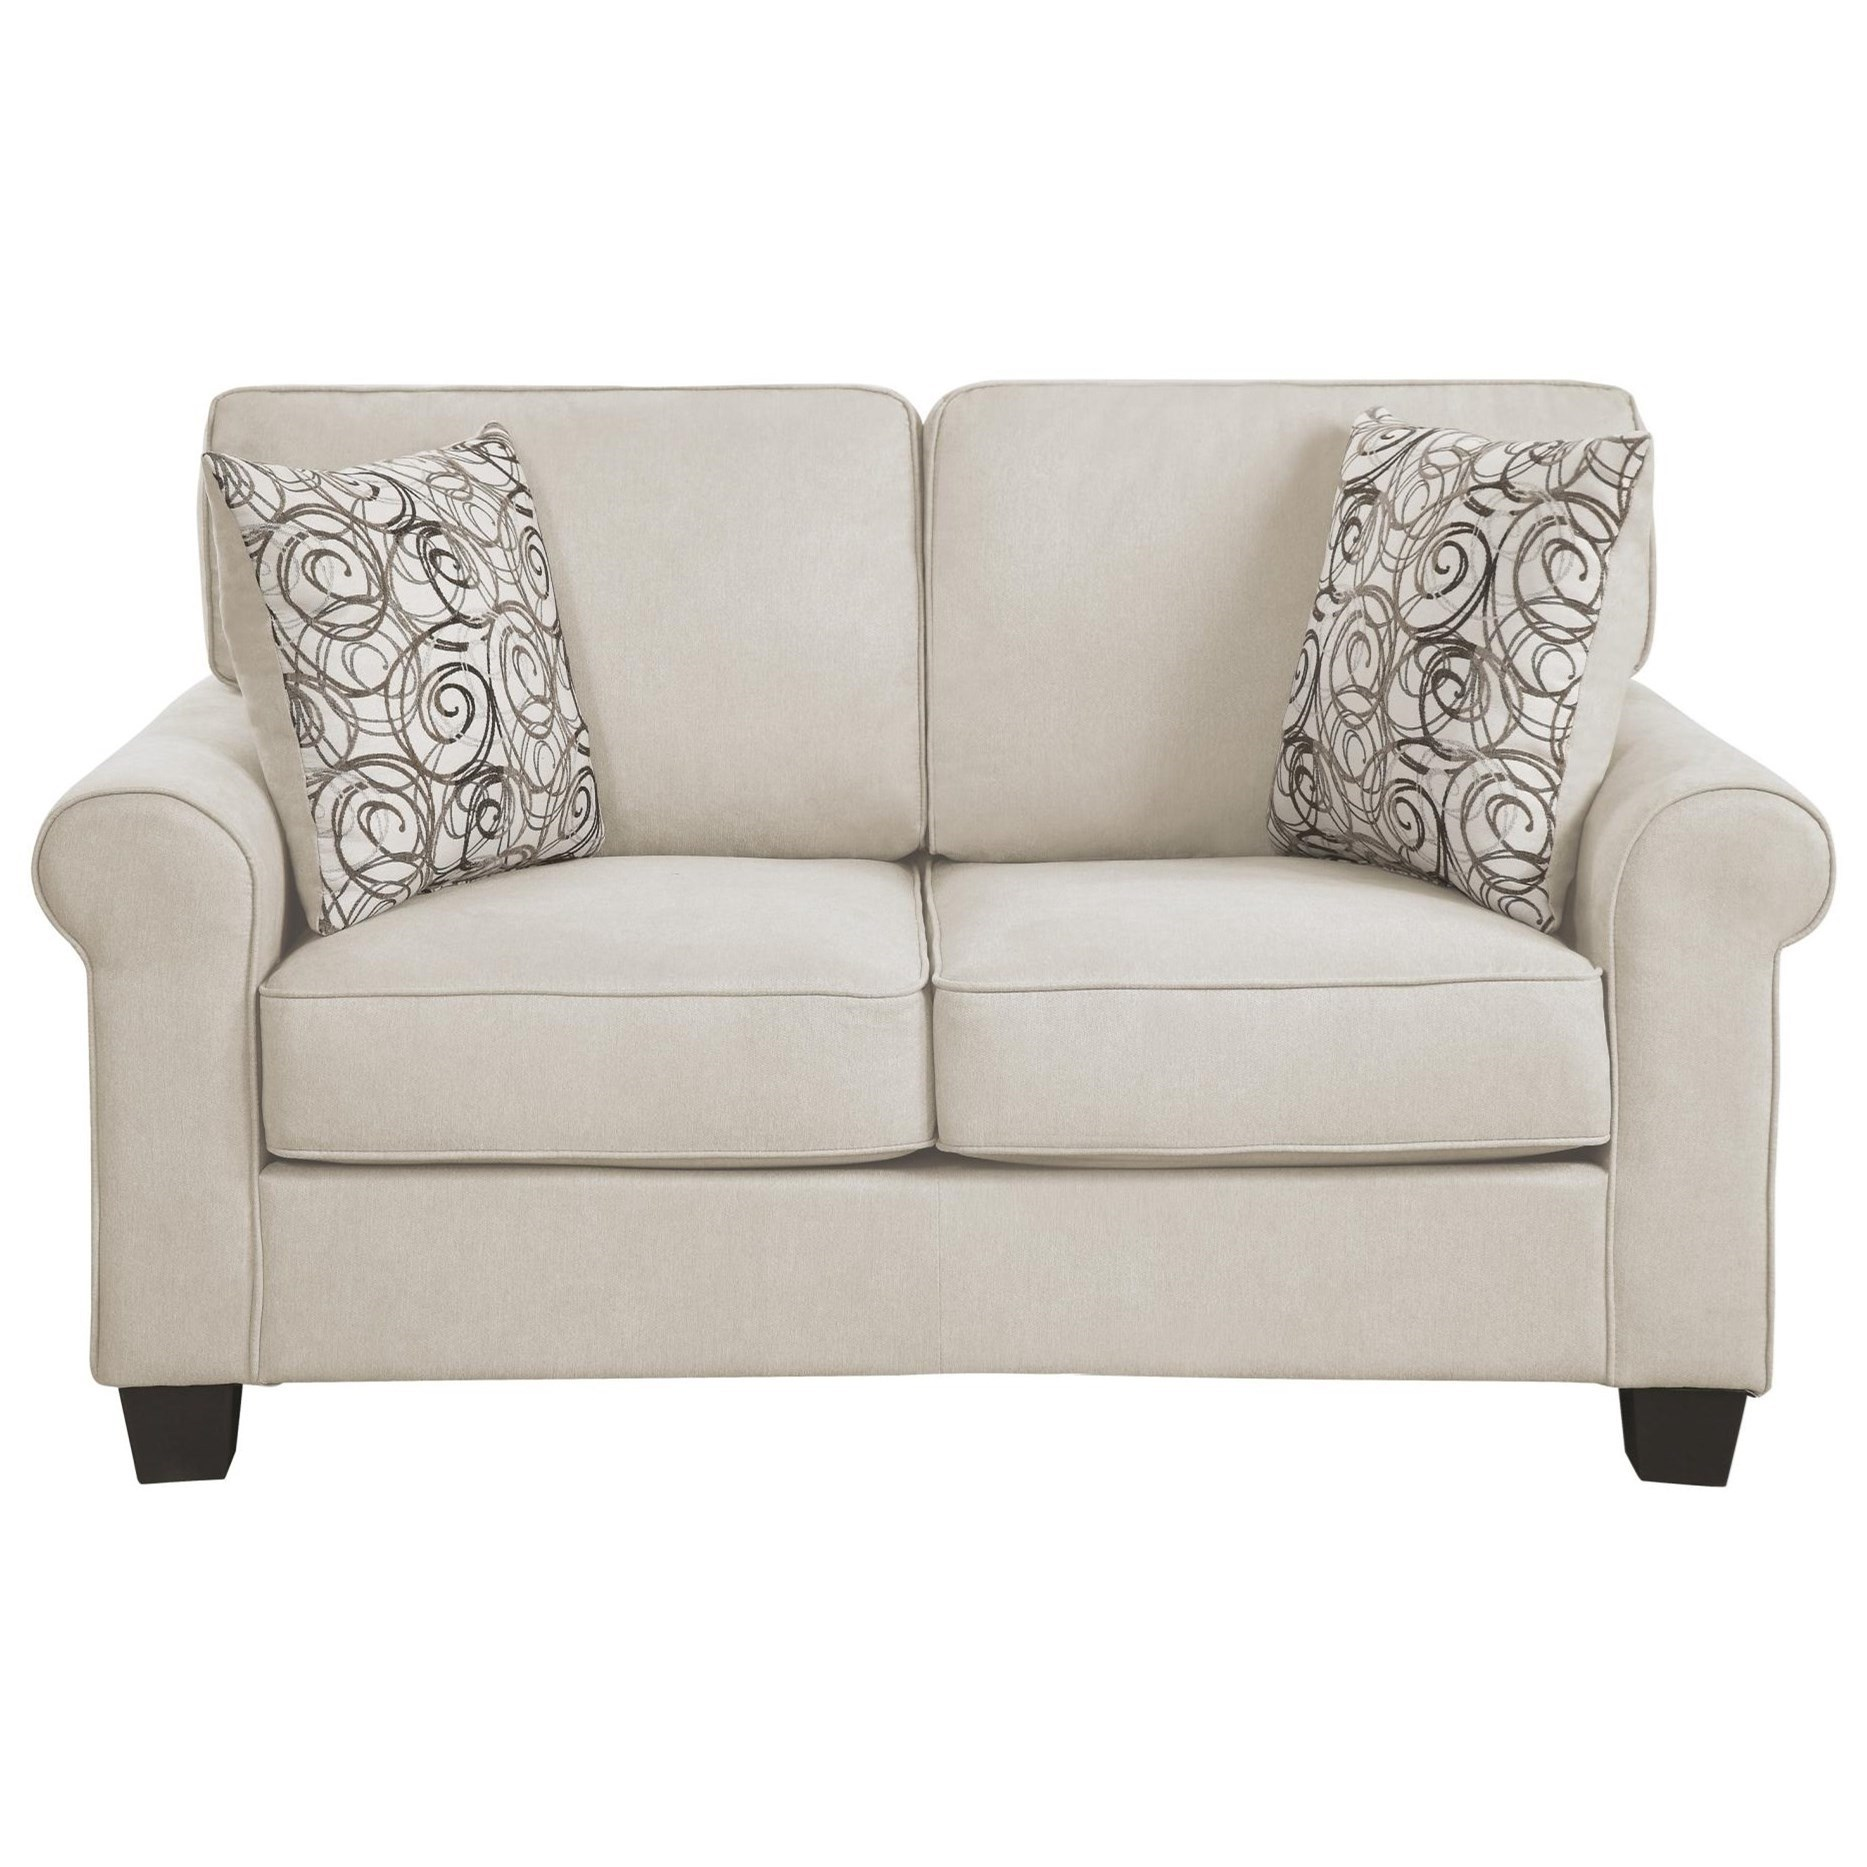 Selkirk Love Seat by Homelegance Furniture at Del Sol Furniture